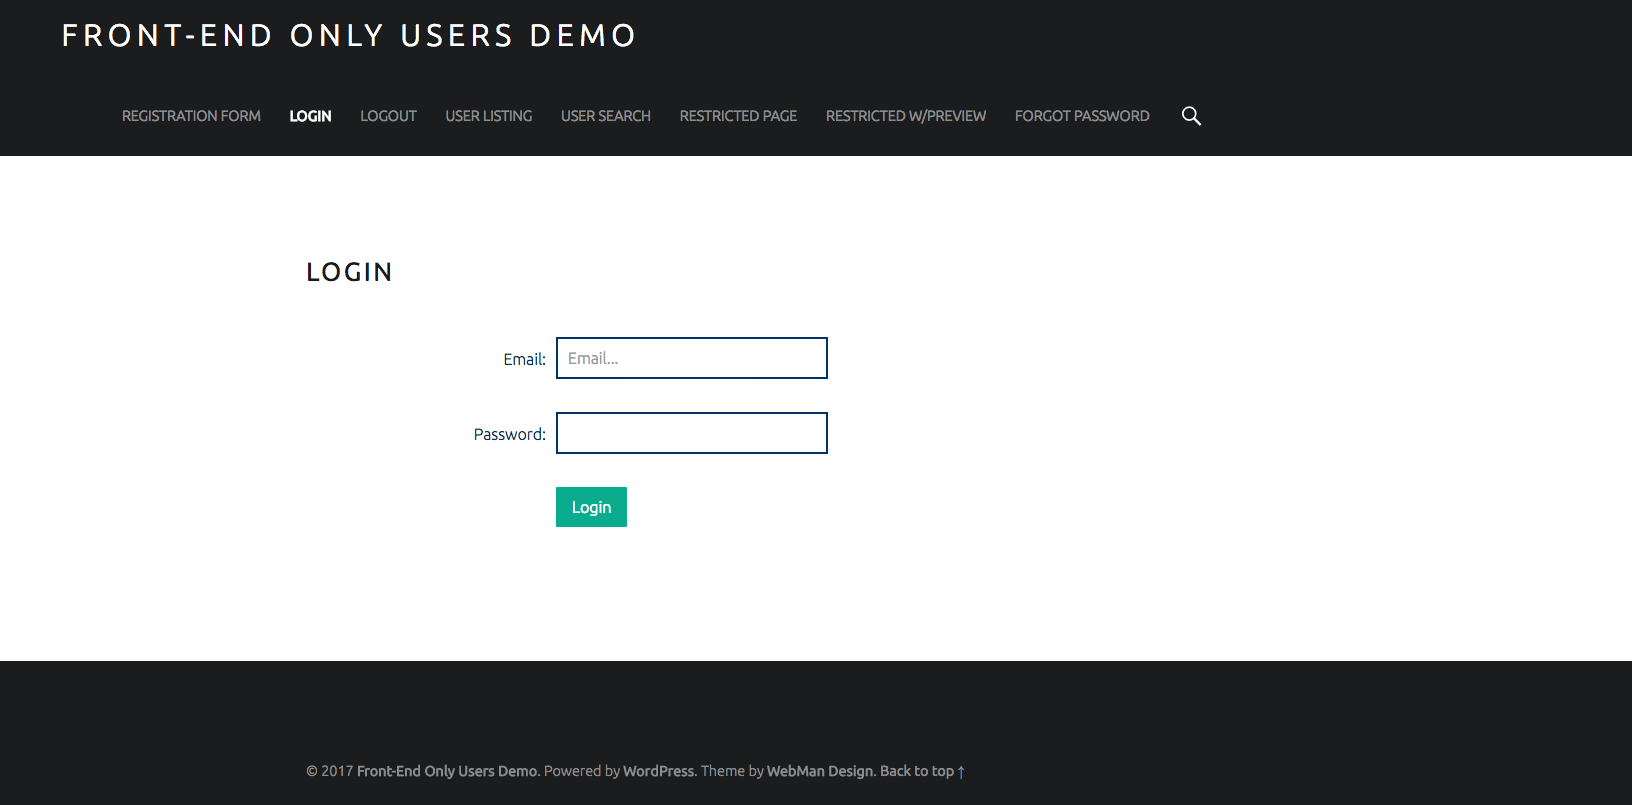 front-end-only-users screenshot 2